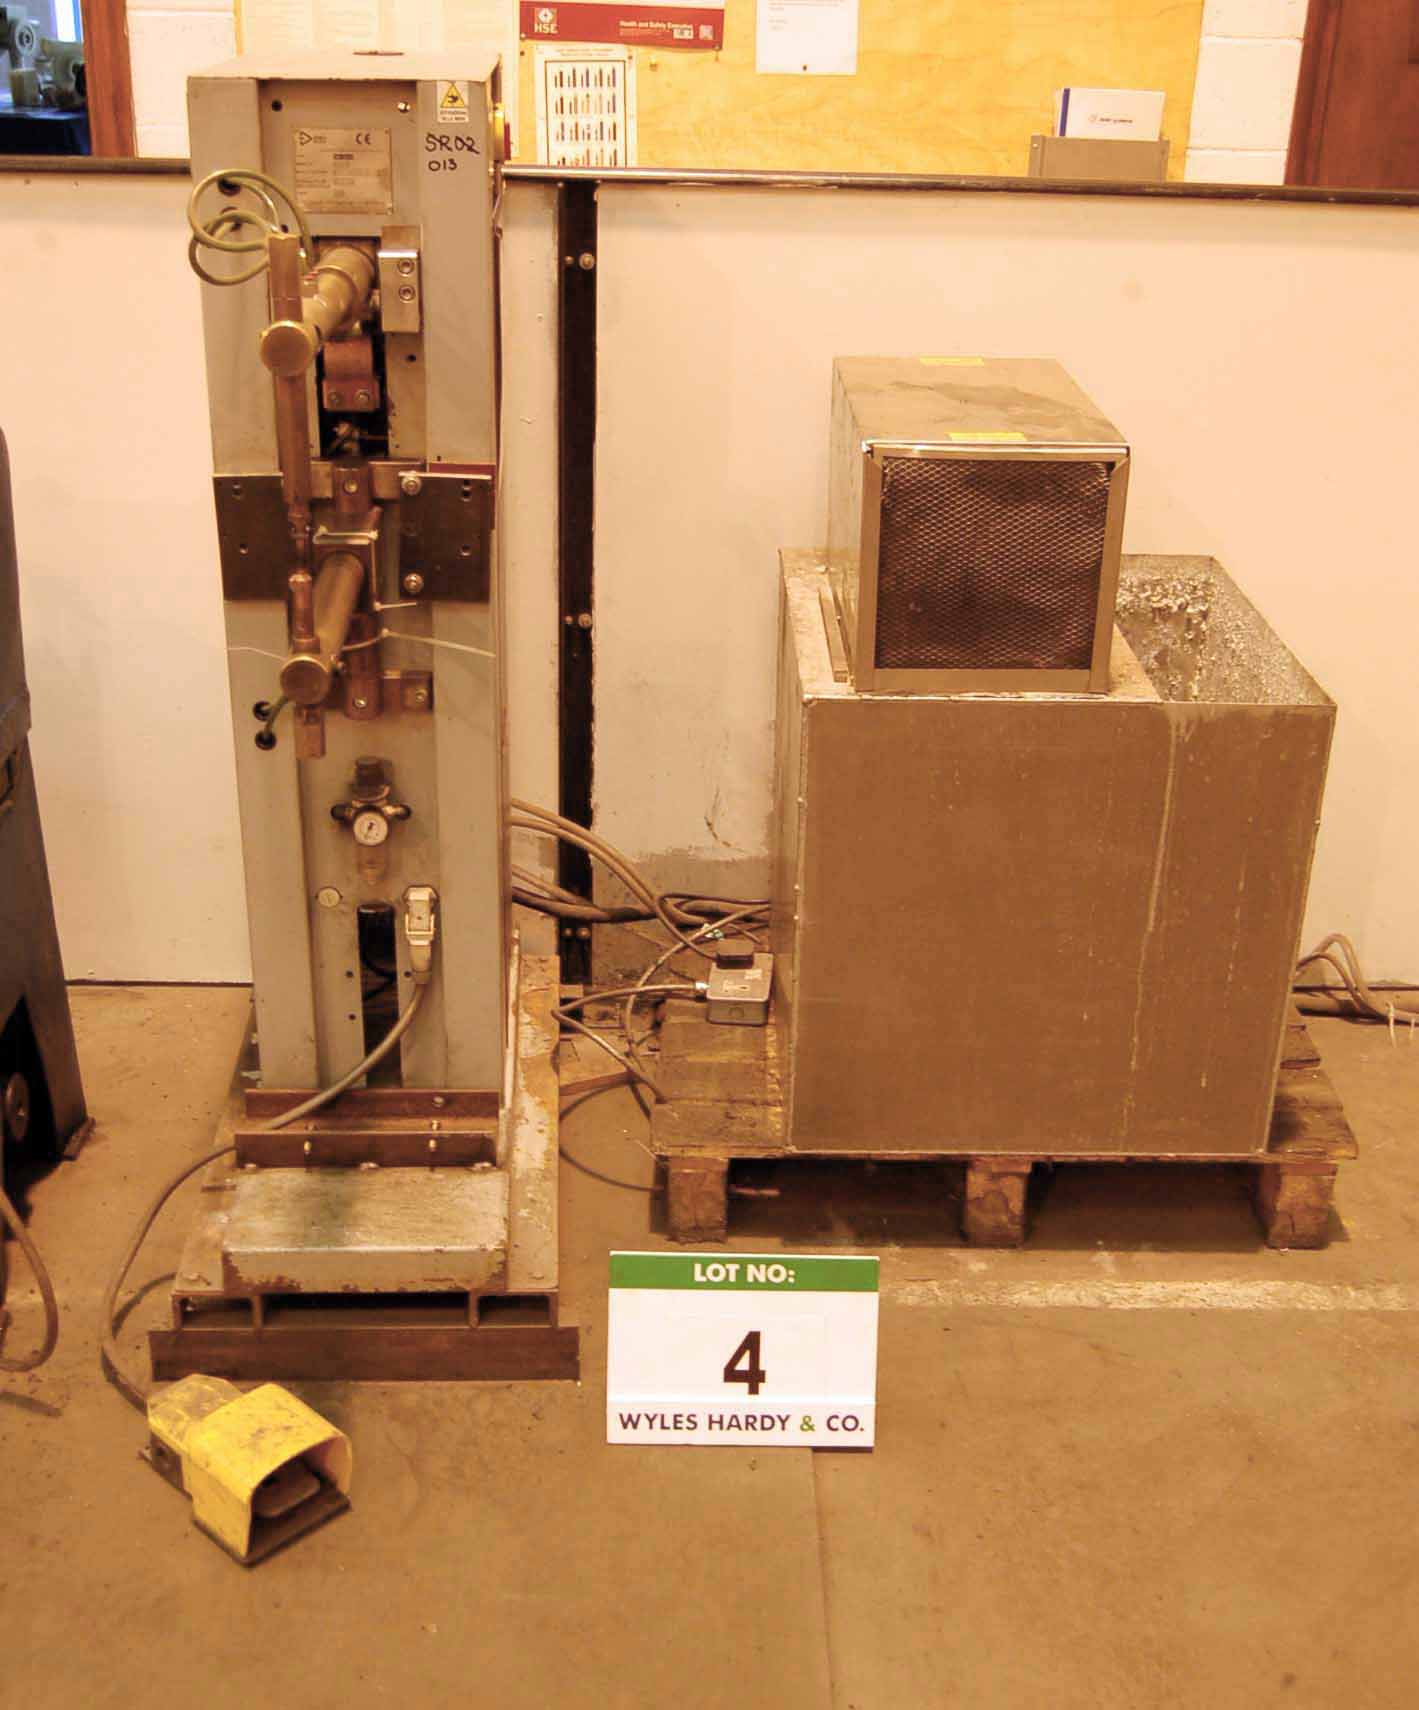 Lot 4 - A D PEI POINT Puntatrici Type PBP126C2 25KVA Spot Welder, Serial No. 0109576 (2001) with 430mm